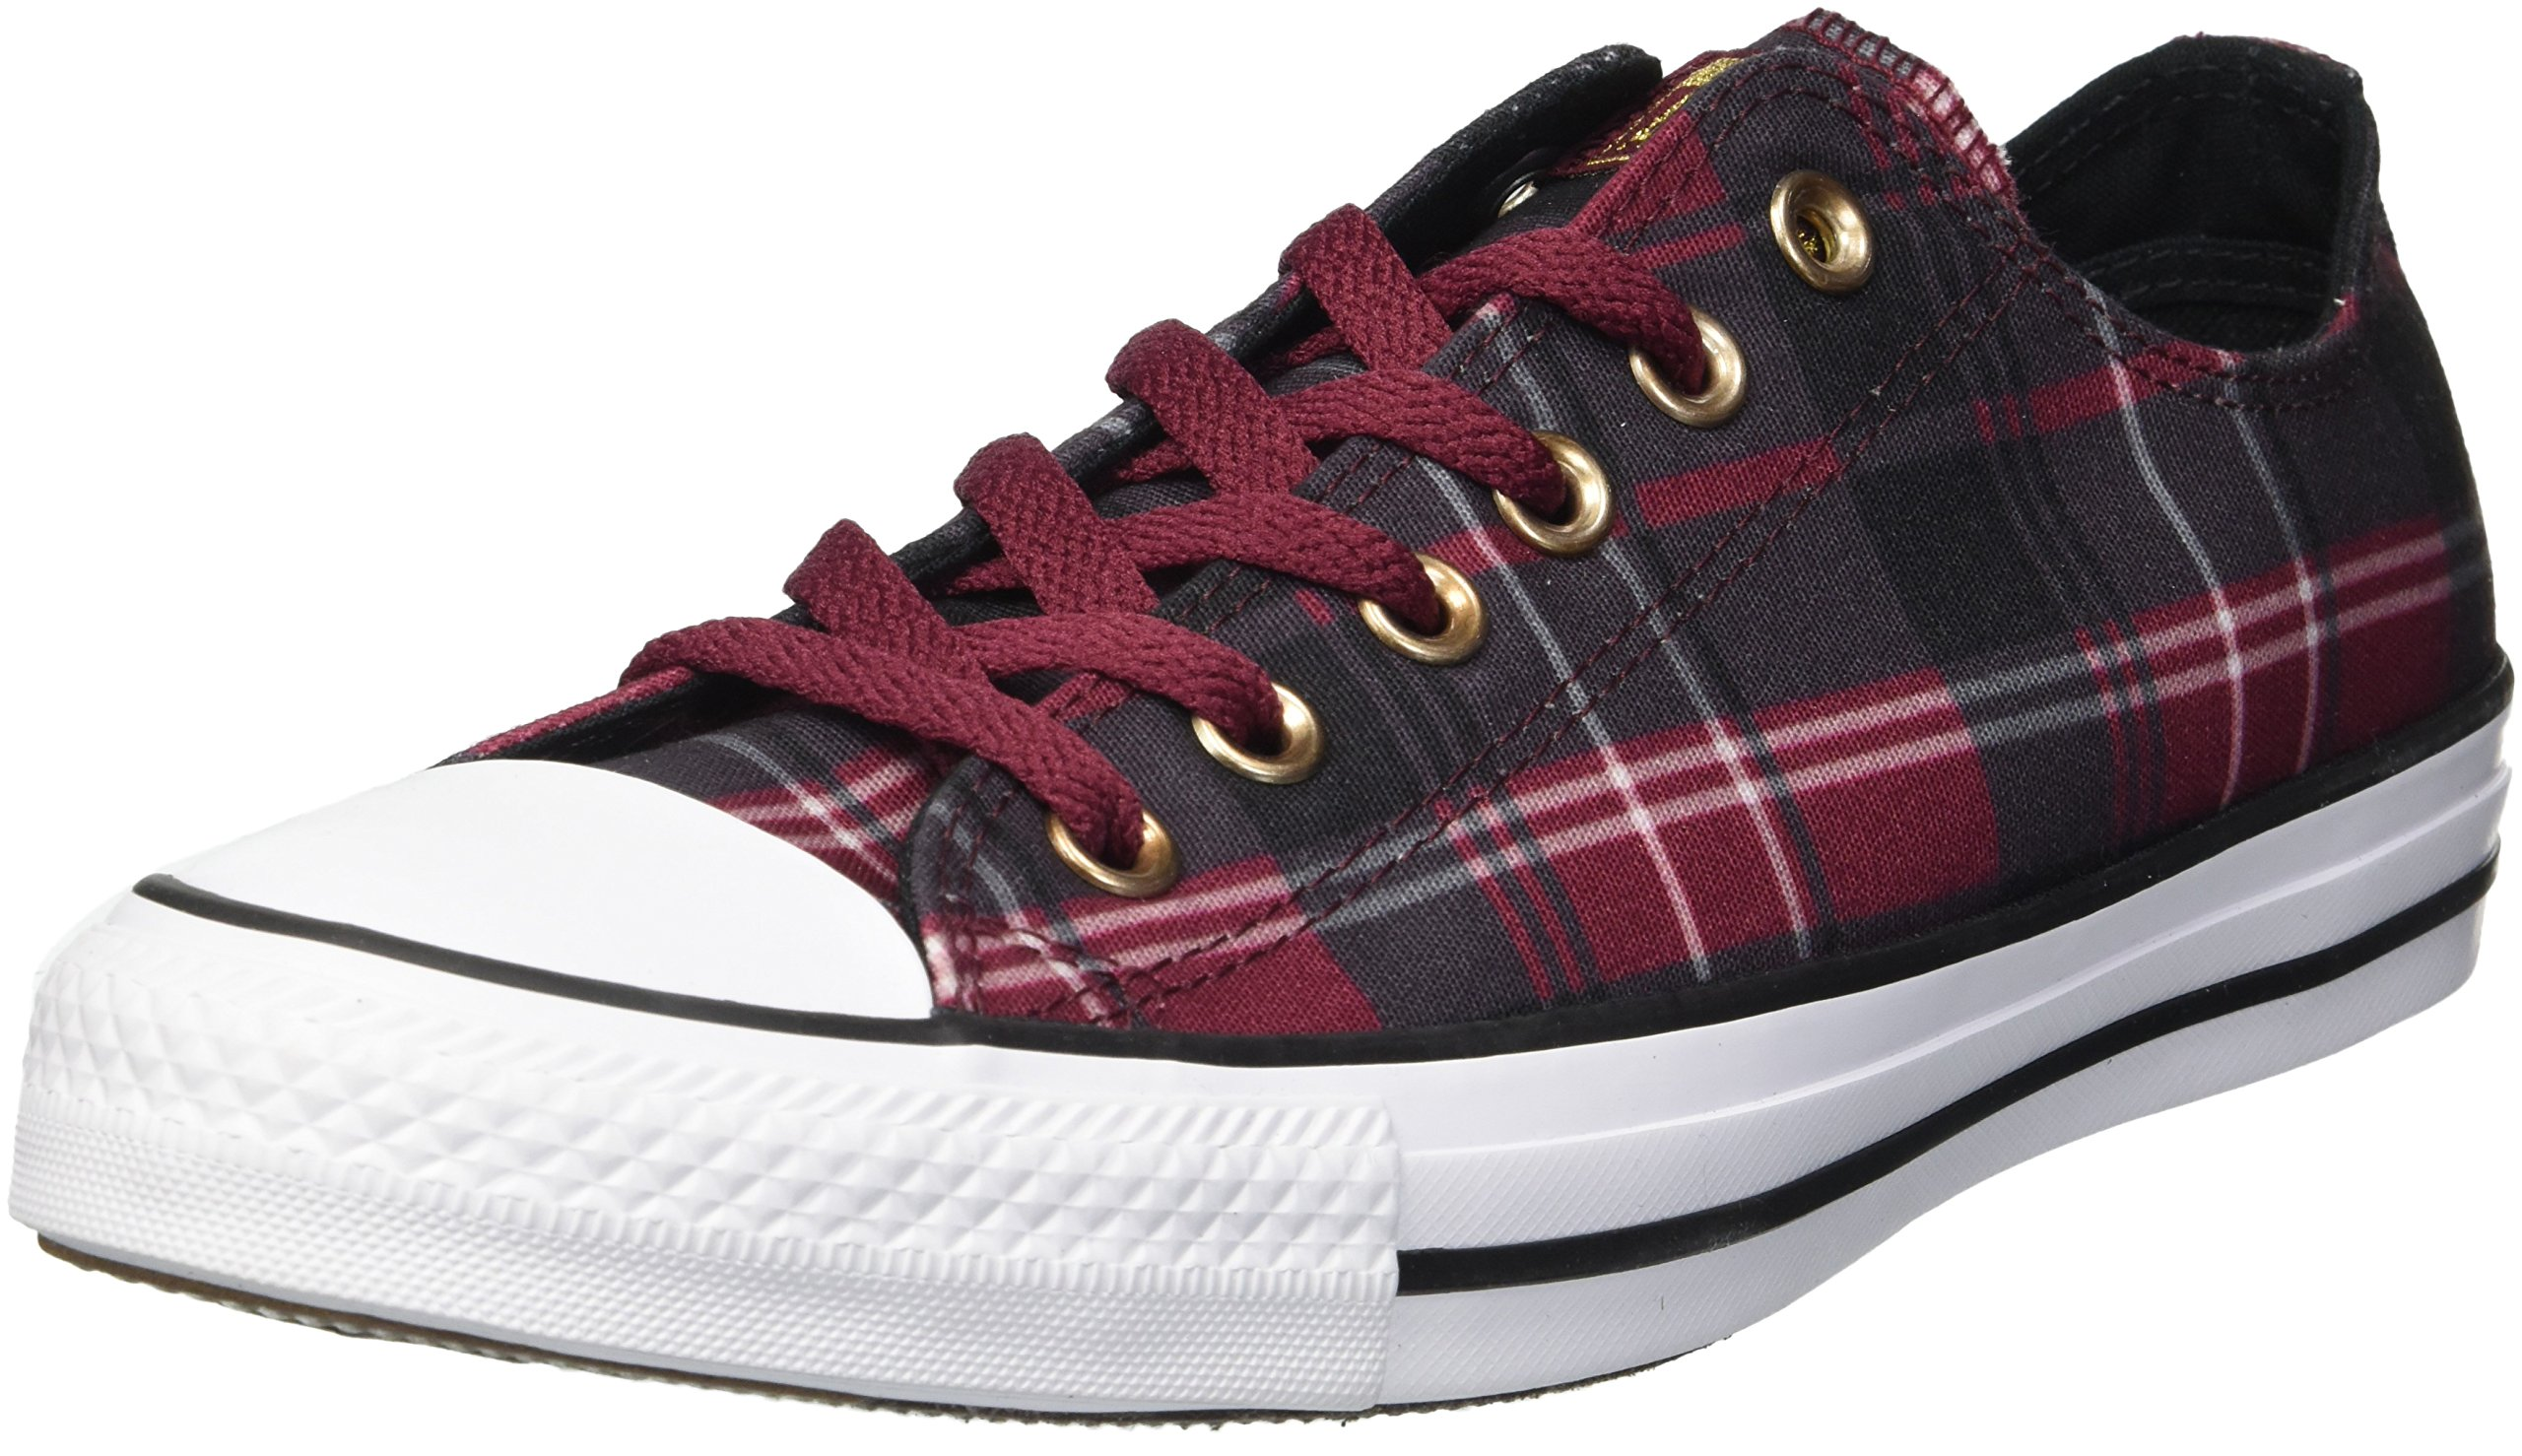 Converse Women's Chuck Taylor All Star Plaid Low Top Sneaker, Dark Burgundy/Black/White, 5.5 M US